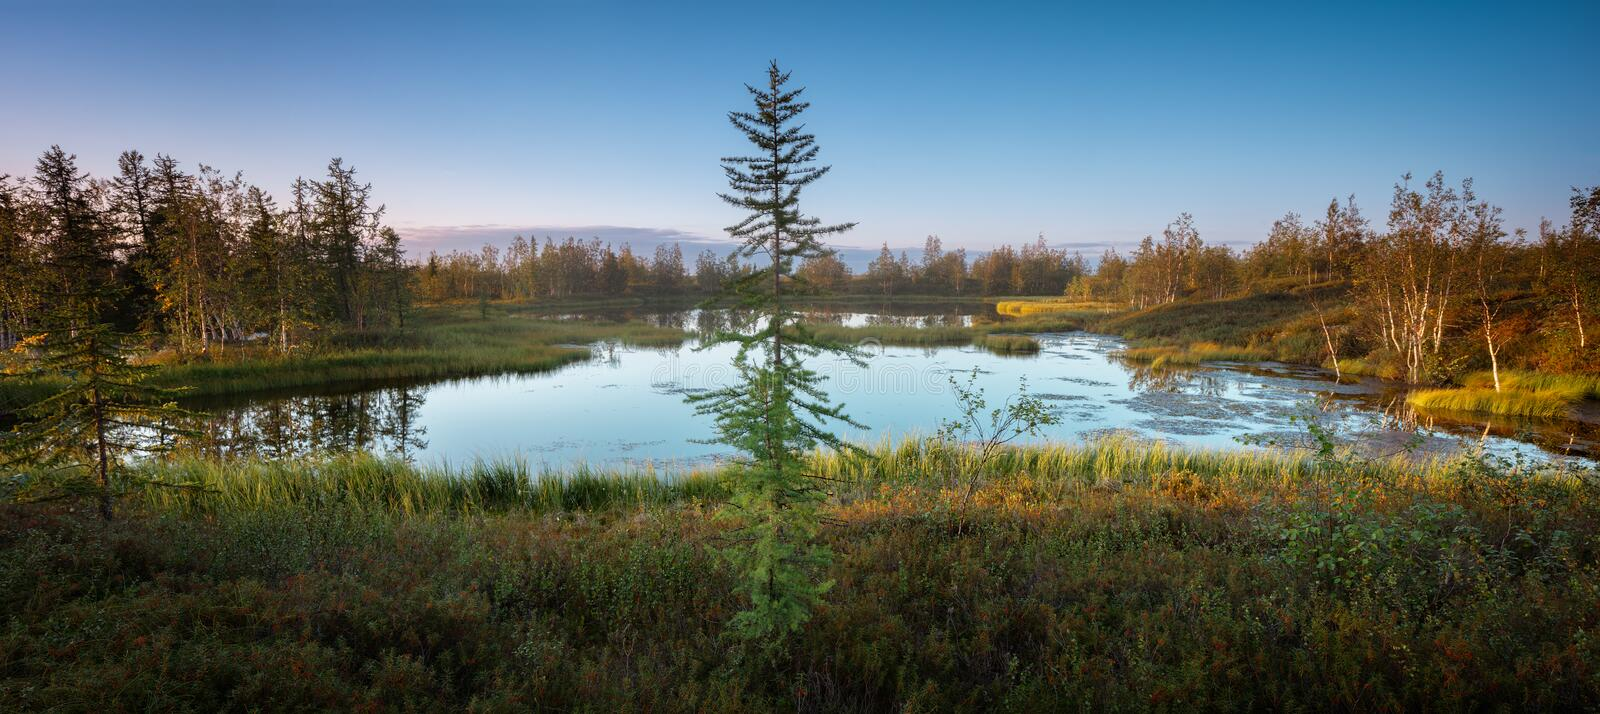 Beautiful summer northern Siberian wild landscape, a lonely spruce larch by a lake or swamp, panoramic view stock photos